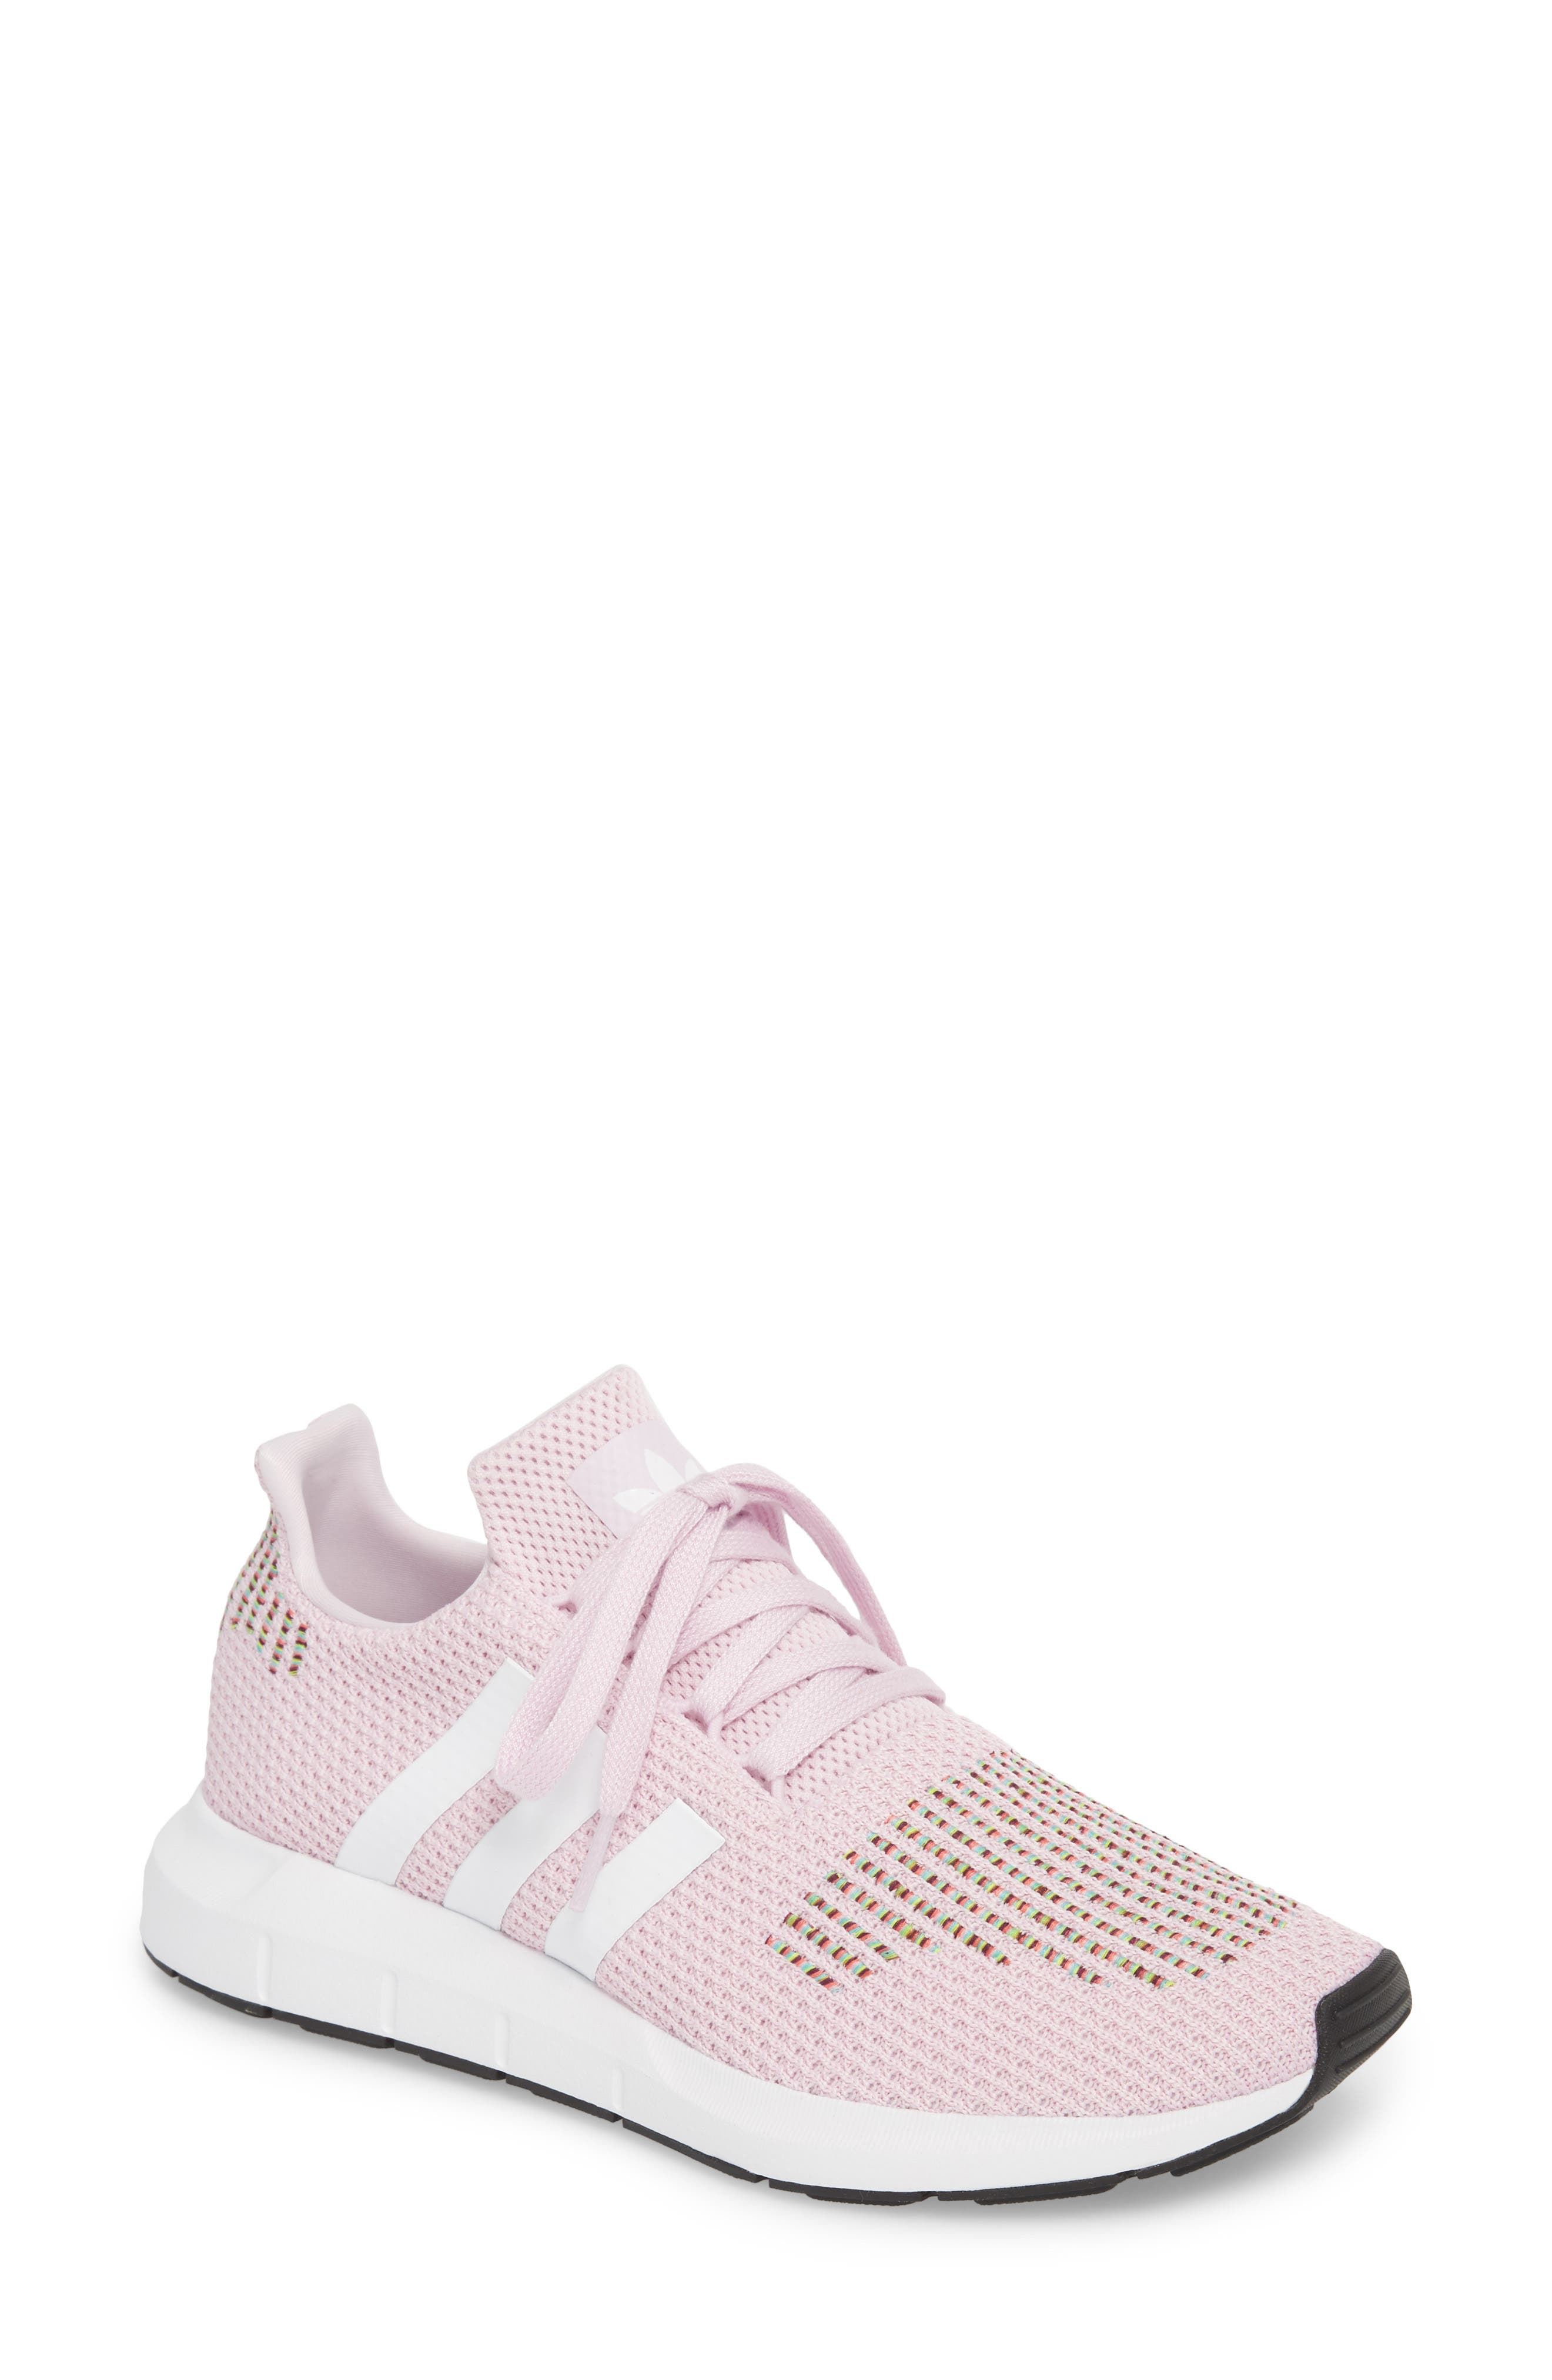 Swift Run Sneaker,                             Main thumbnail 1, color,                             Aero Pink/ White/ Core Black